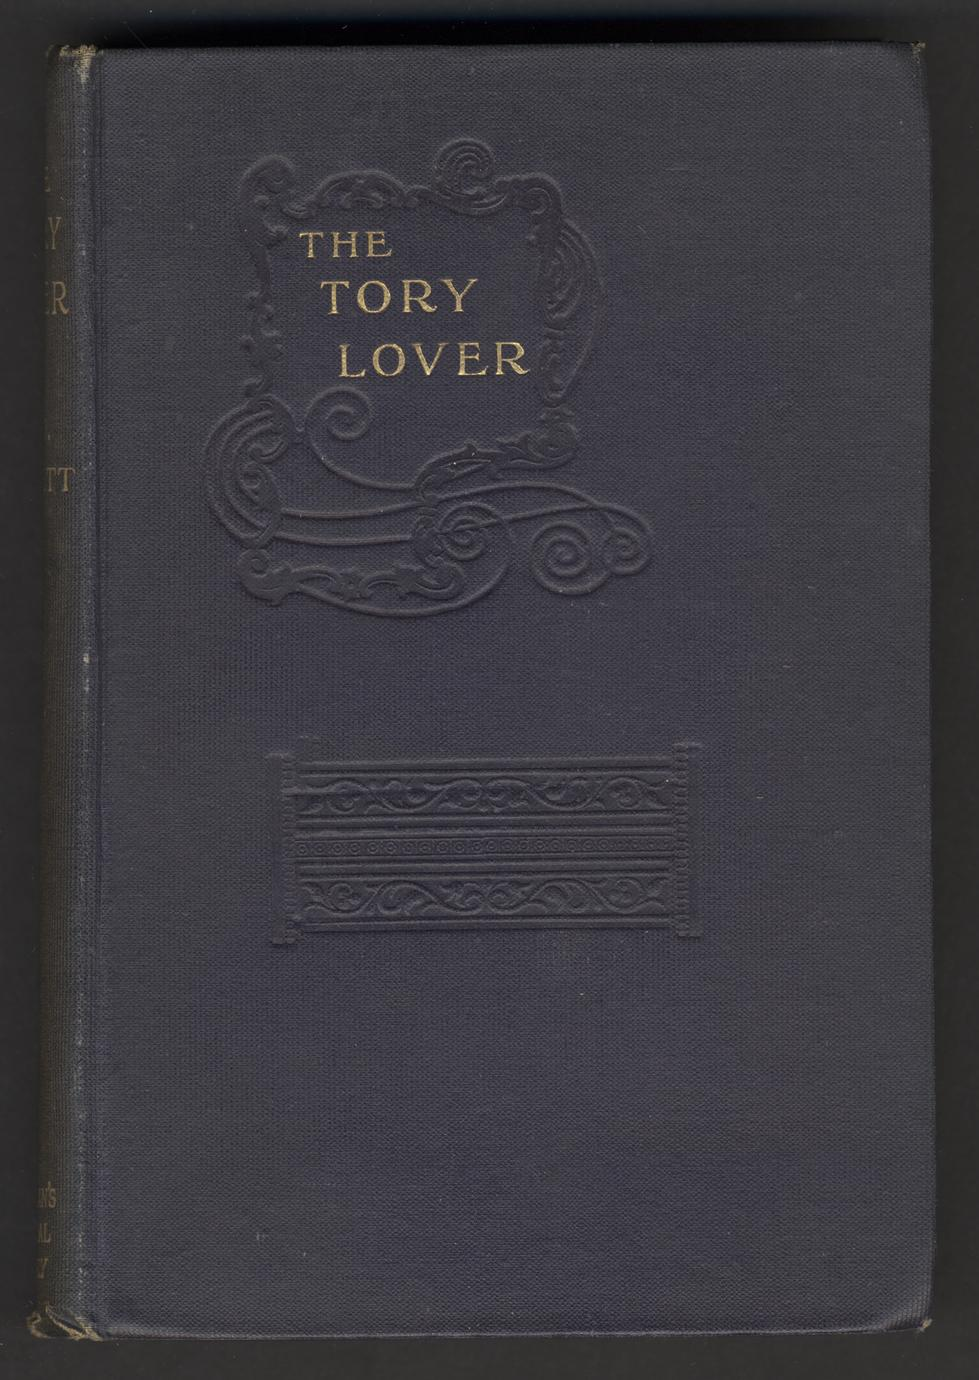 The Tory lover (1 of 2)